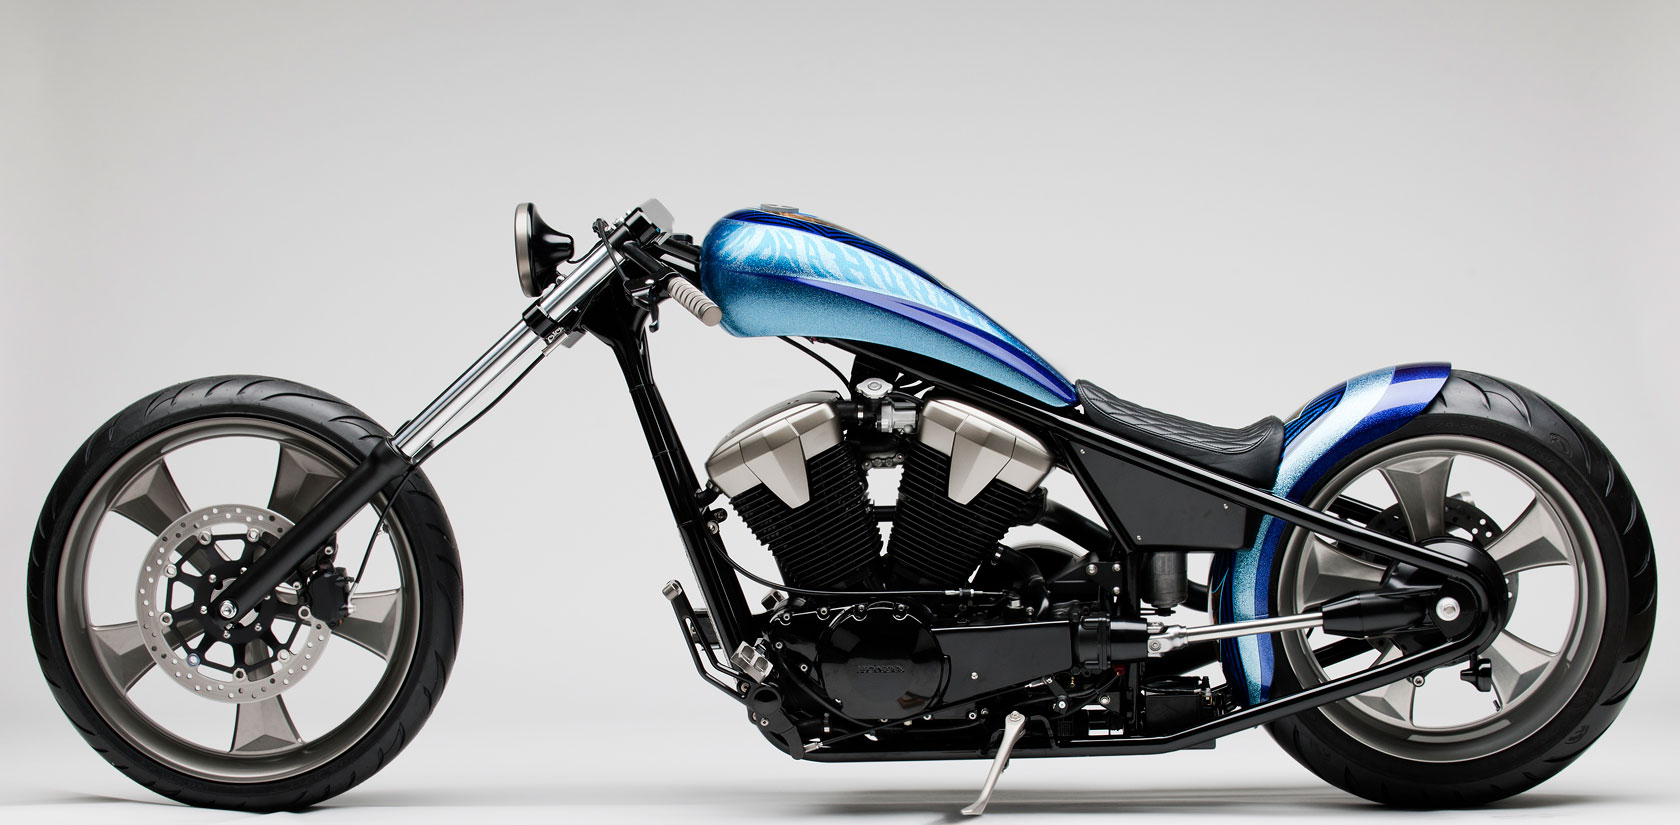 Honda Fury ABS images #83361